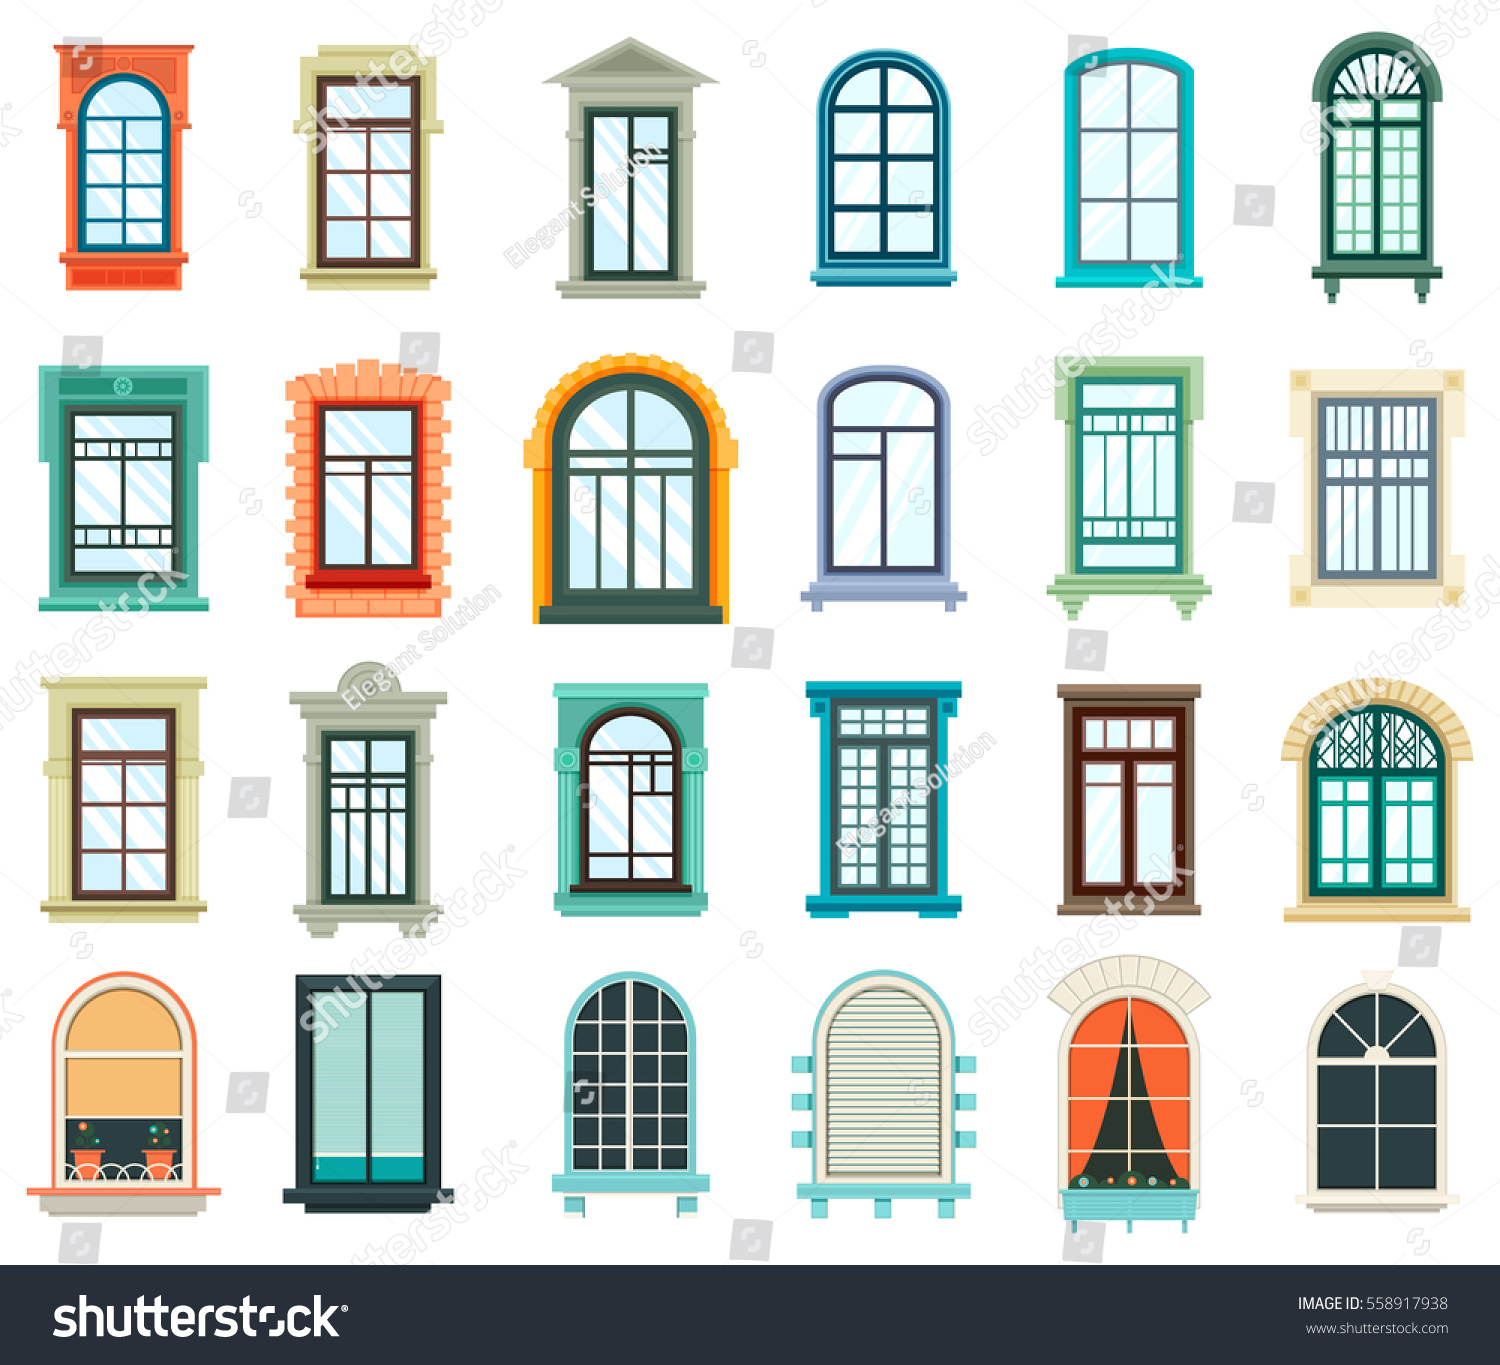 Retro Wood Wooden Window Frames View Stock Vector 558917938 Shutterstock